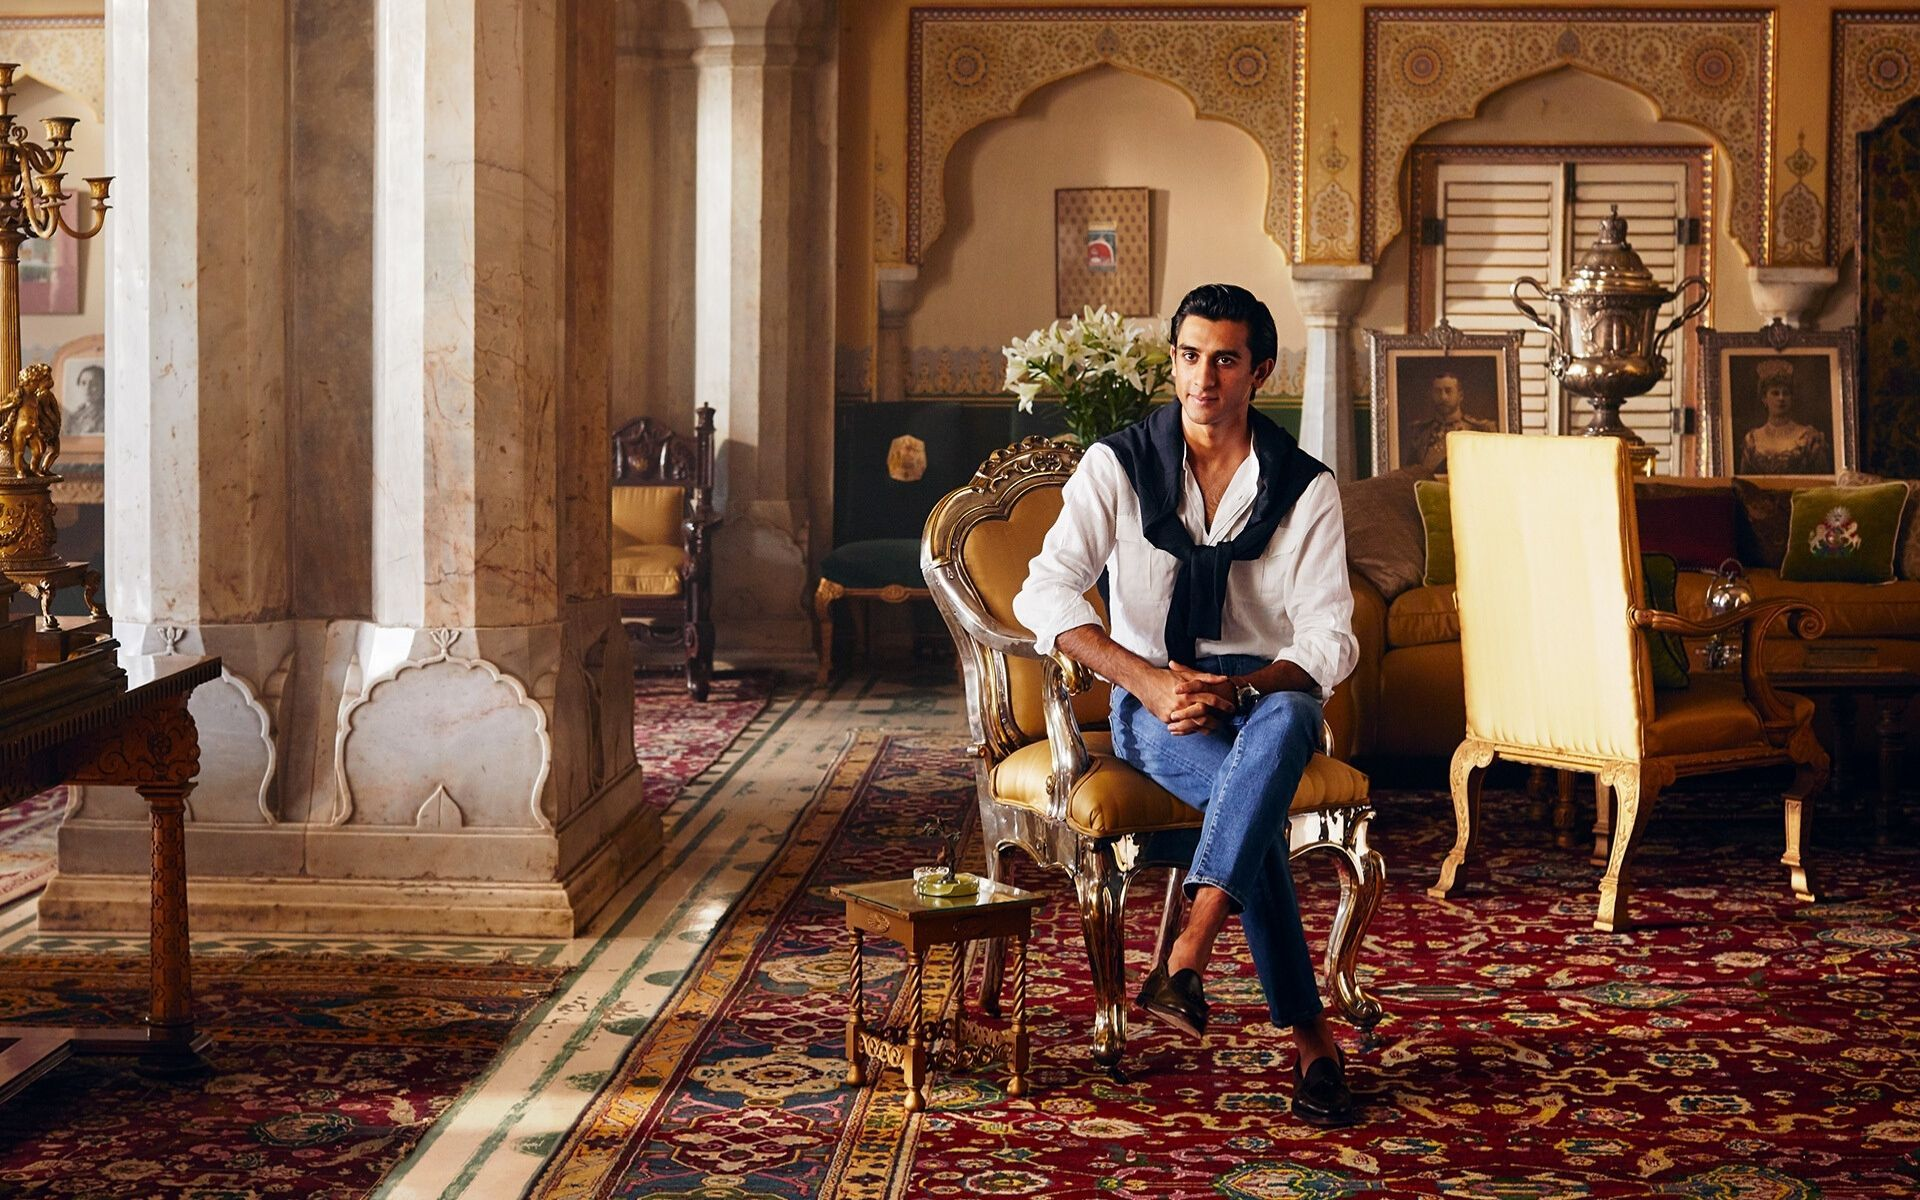 Fancy Staying In A Palace With 21-Year-Old Monarch Of Jaipur, Padmanabh Singh, As Your Airbnb Host?